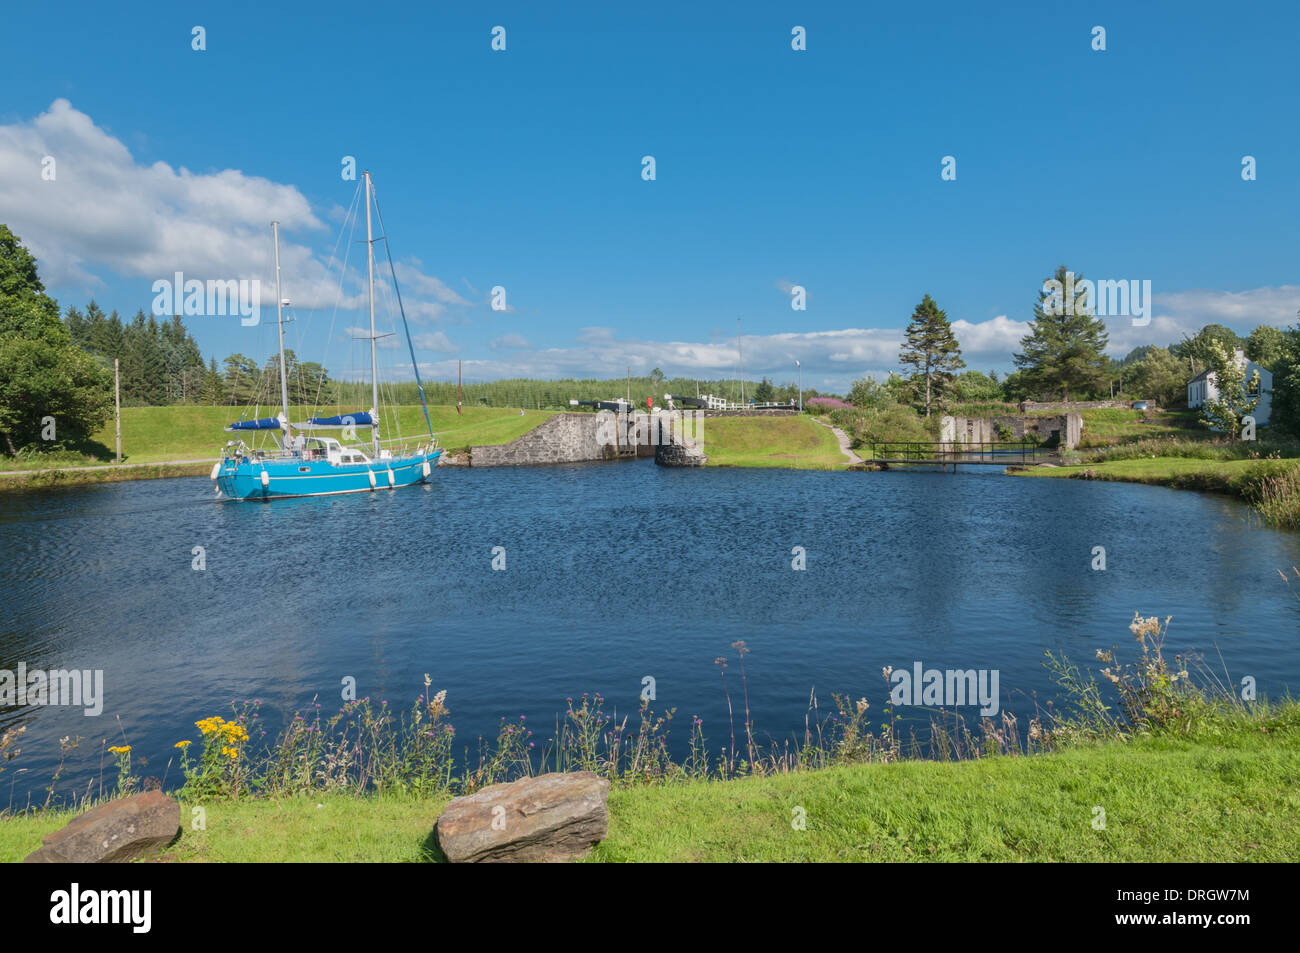 Yacht going along CrinanCanal at Dunardry Locks Argyll & Bute Scotland - Stock Image